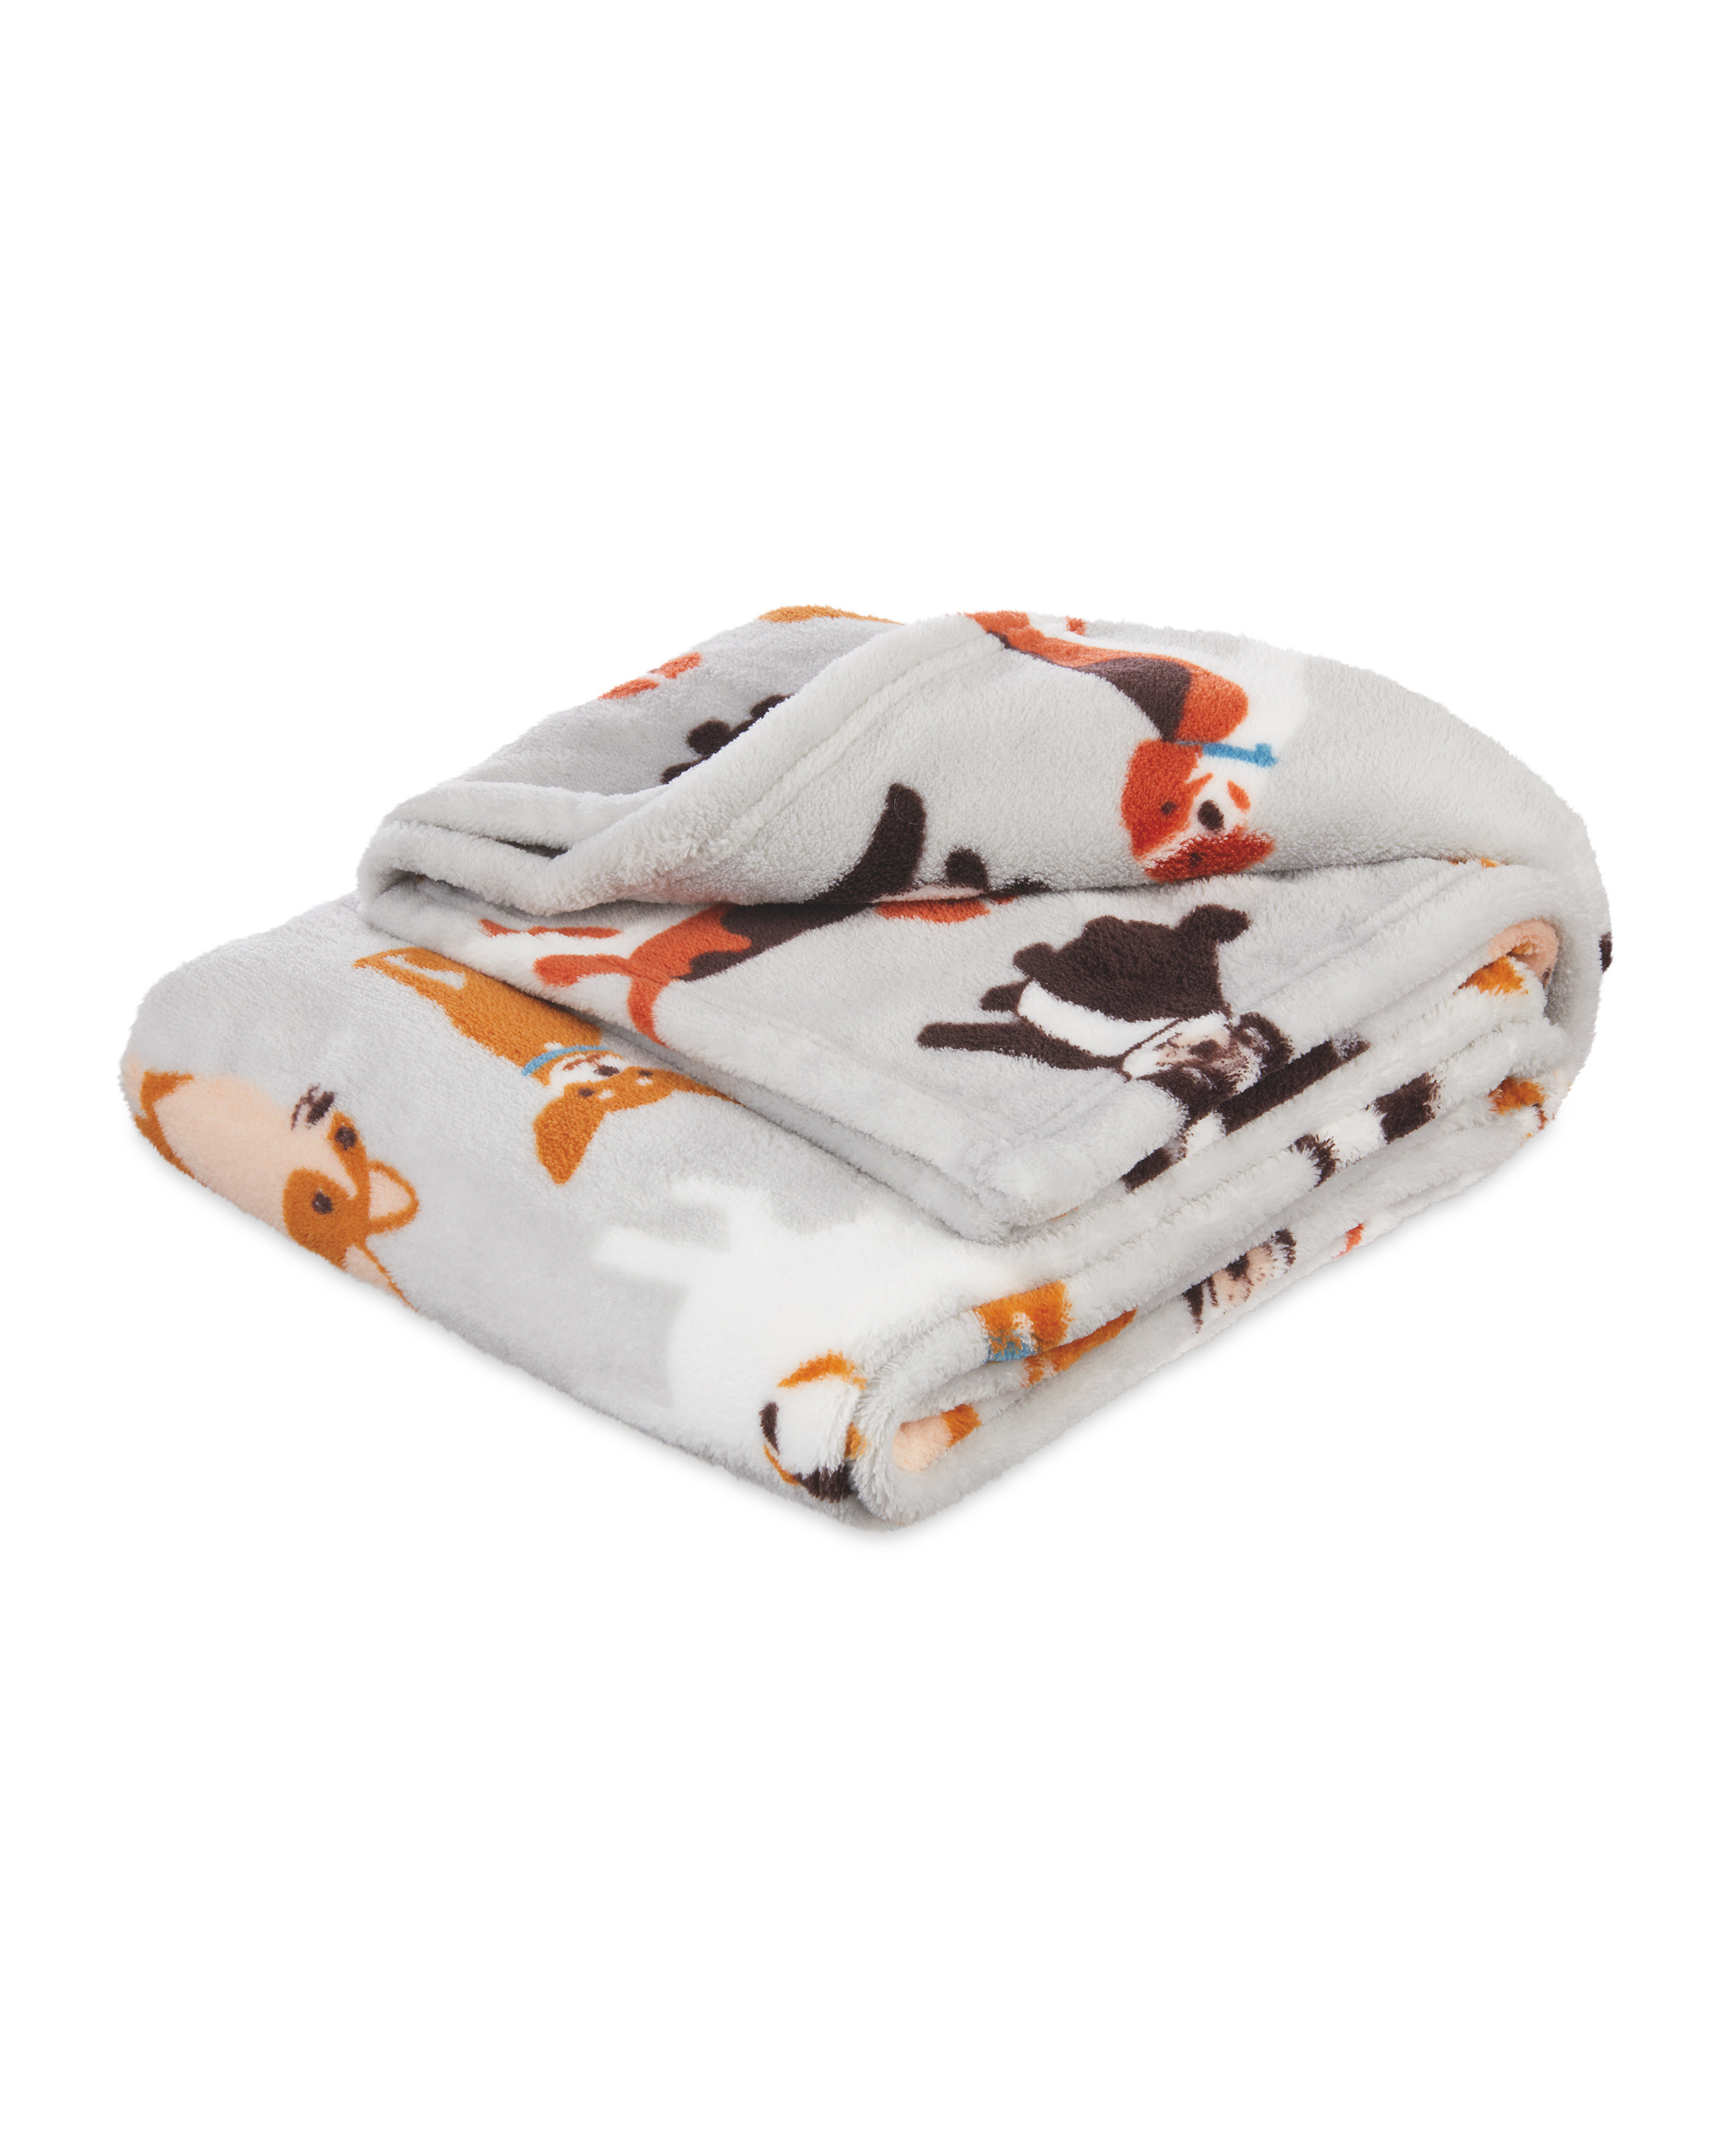 101 Dogs Soft Pet Blanket